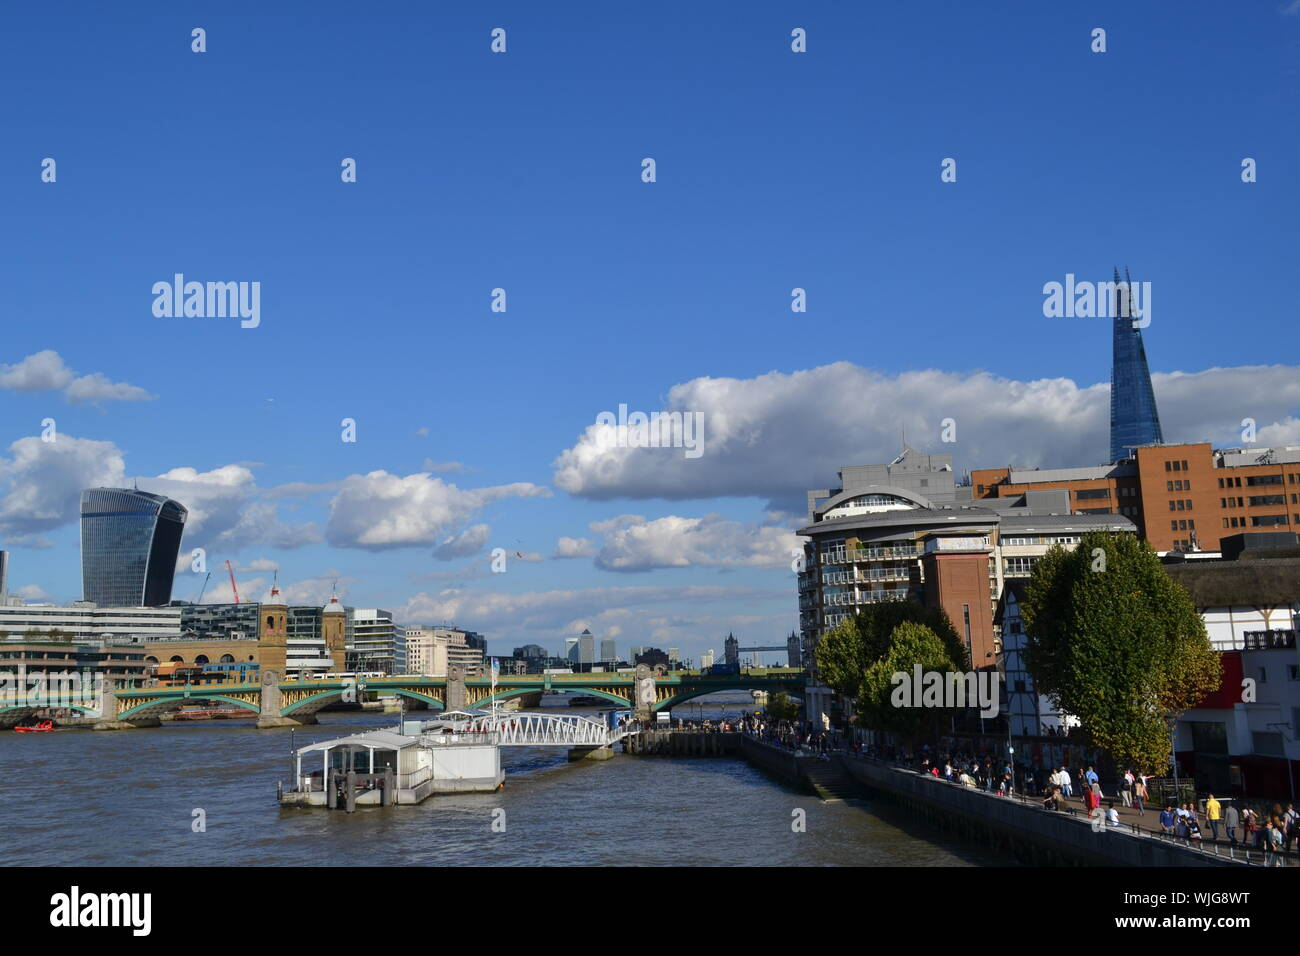 London/UK - August 31, 2014: Beautiful panoramic view to the Thames river, City of London, London bridge, the Shard and embankment on blue sunny sky. - Stock Photo